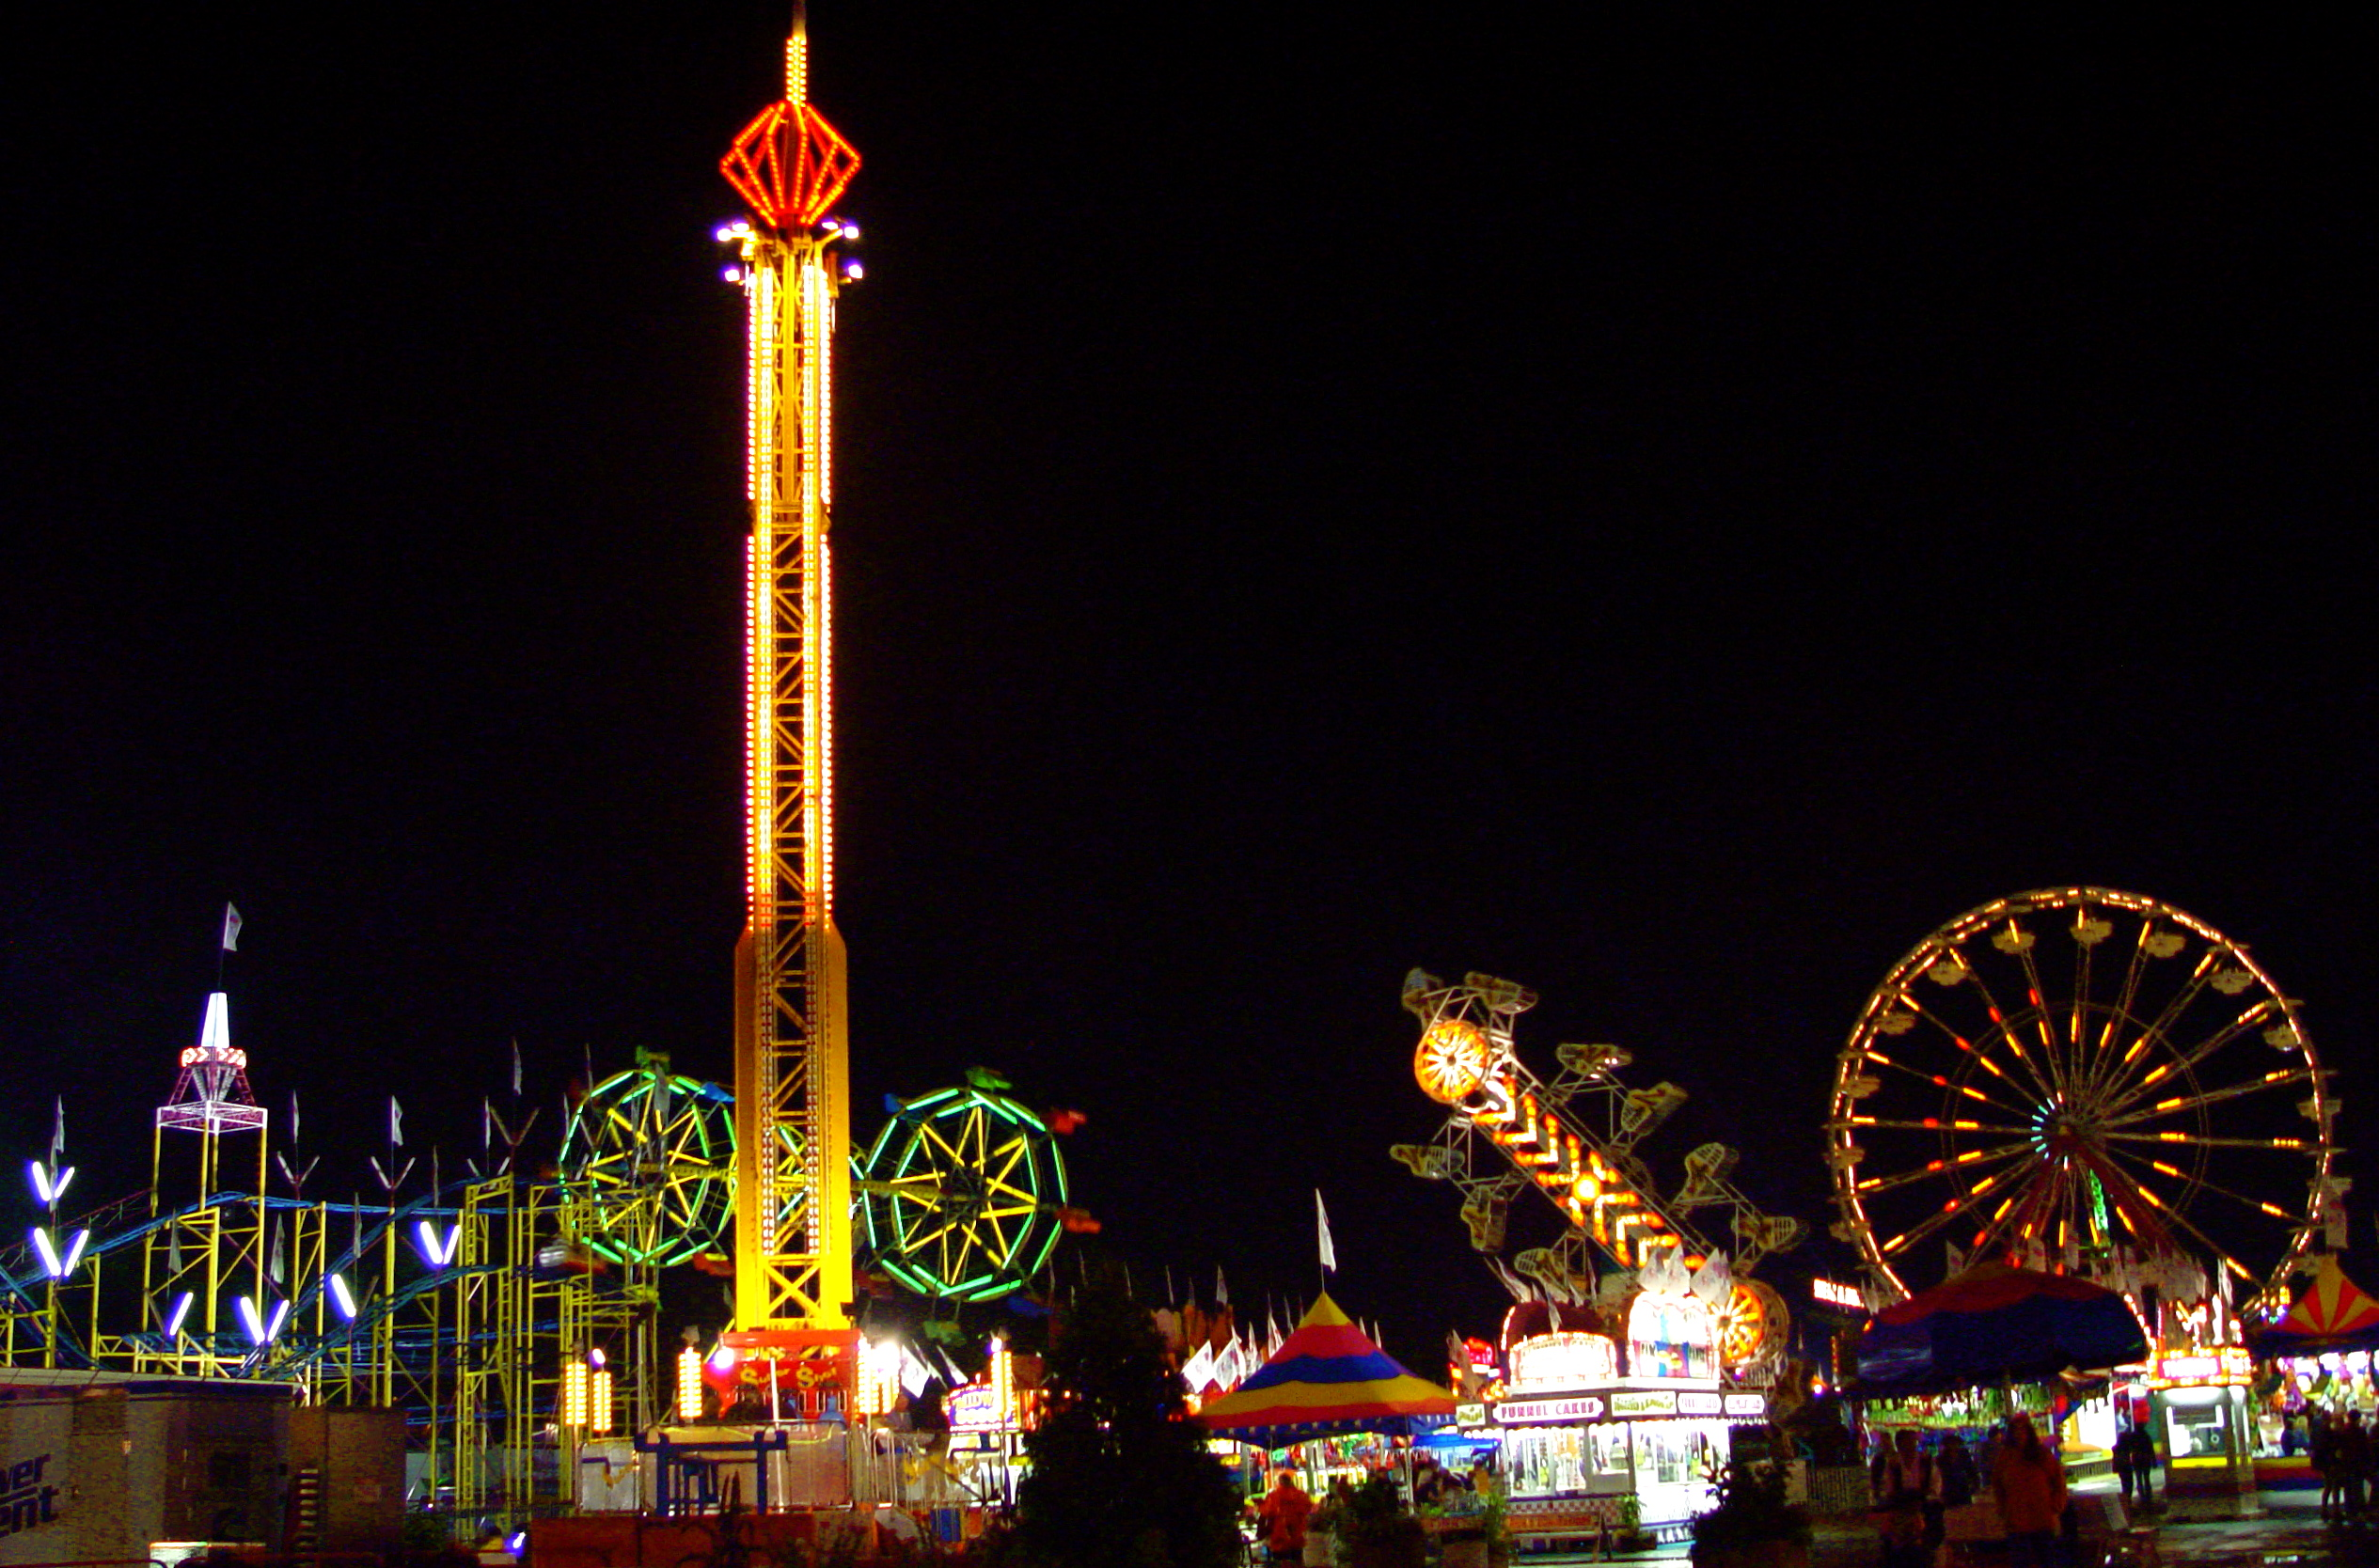 Description Midway-Minnesota State Fair-2006.jpg